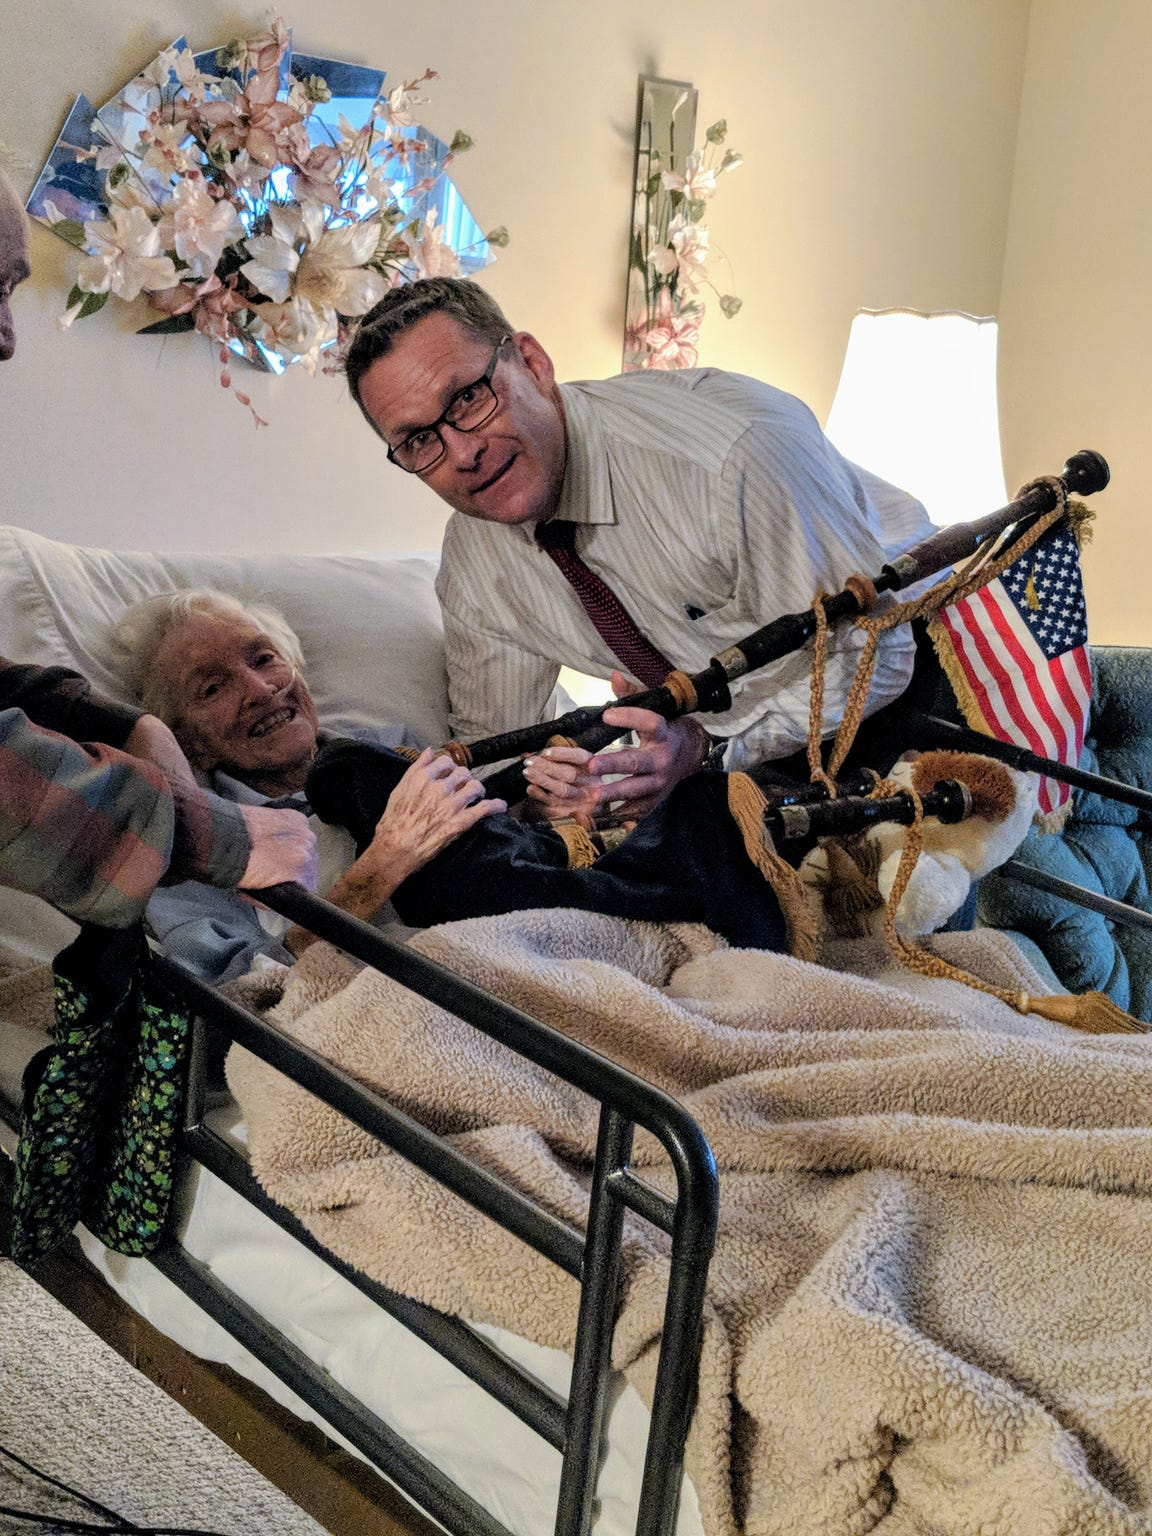 Hospice care is about comfort, uplift and community